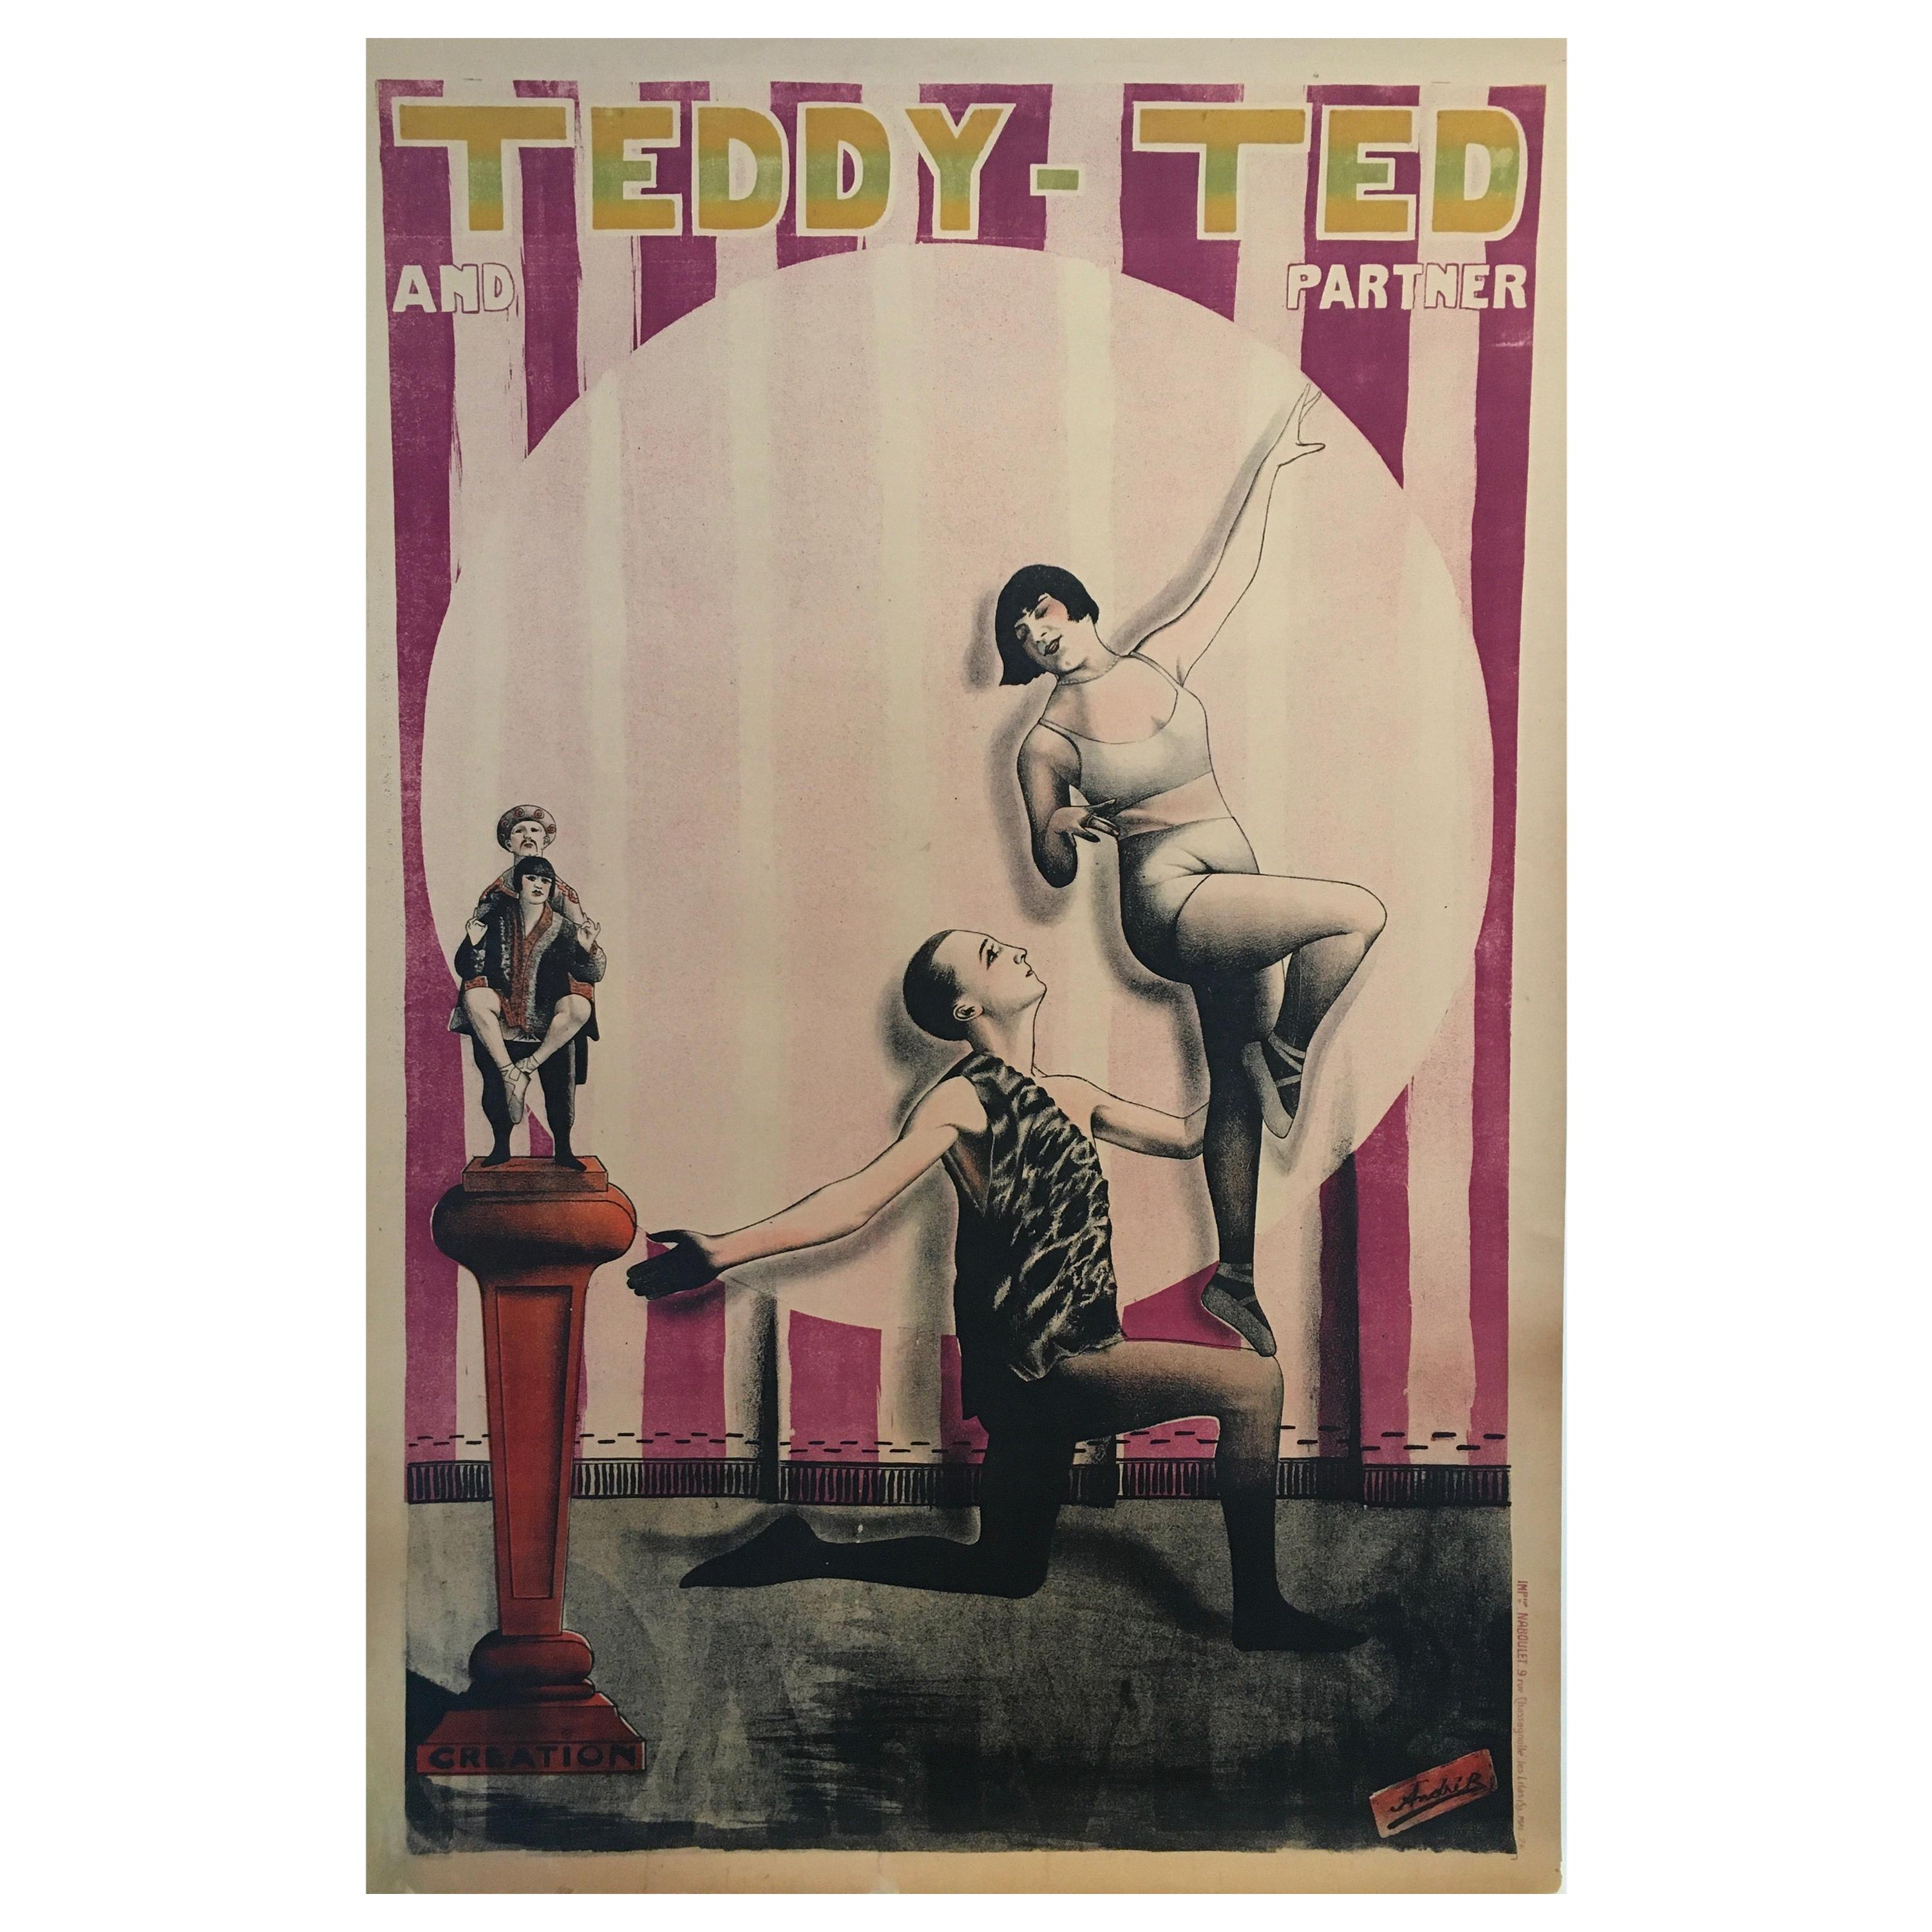 Art Deco Original Vintage French Circus Poster 'Teddy-Ted And Partner', 1926